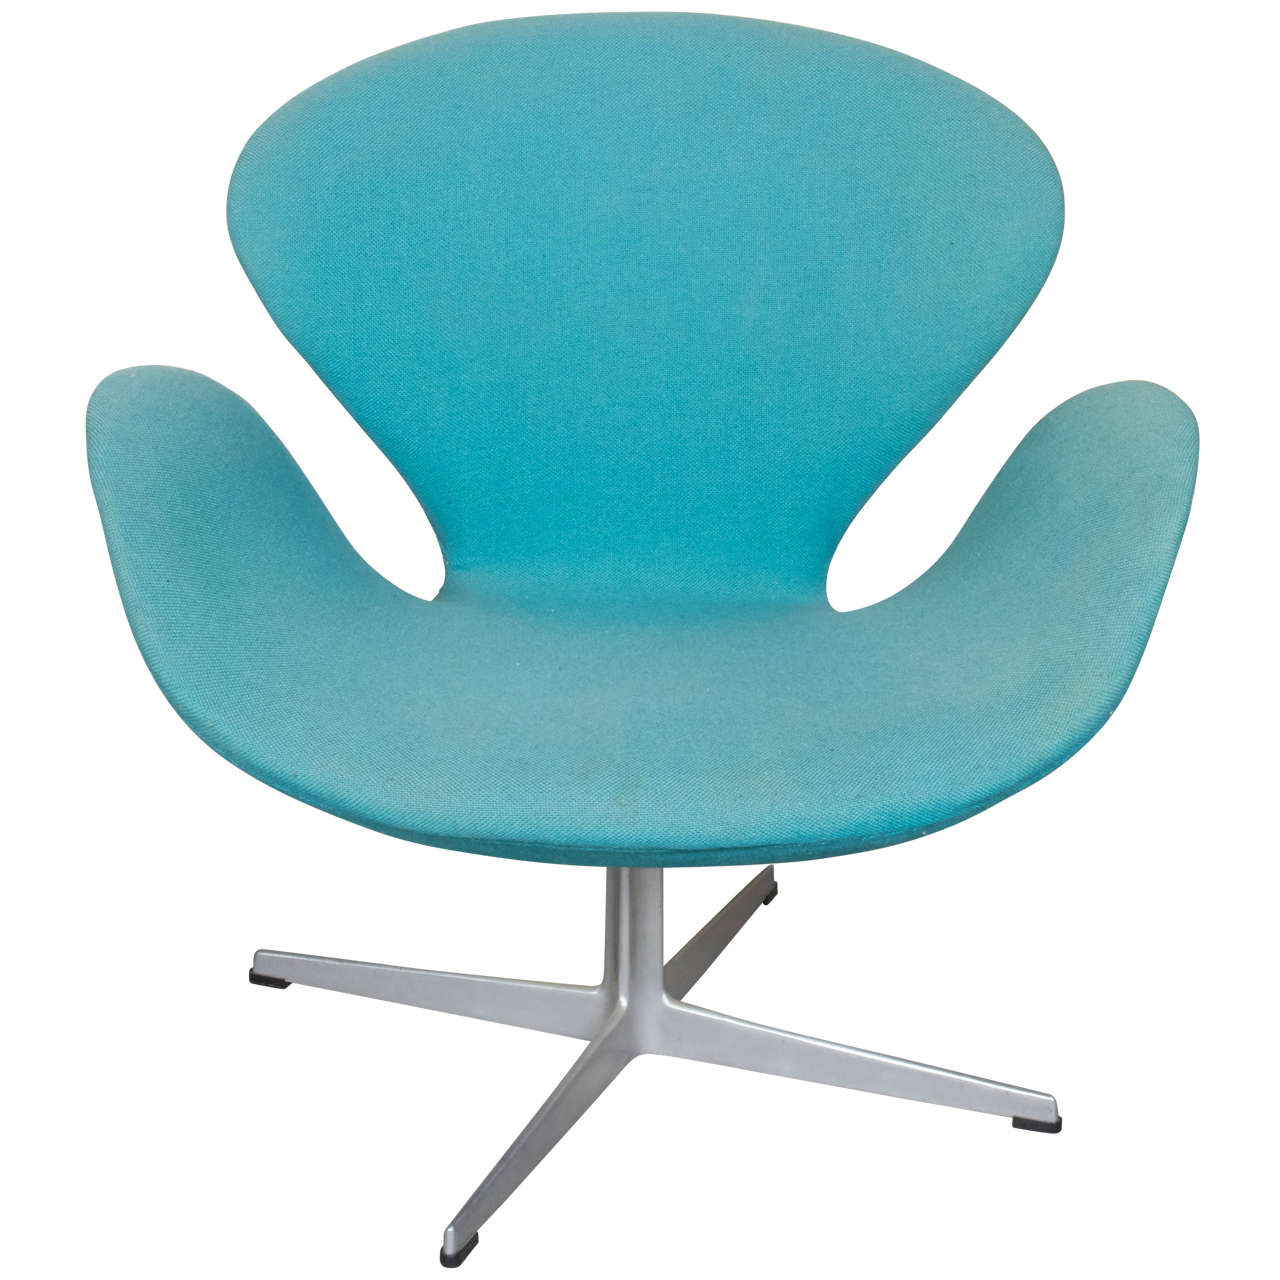 swan chair by arne jacobsen, all original for sale at 1stdibs